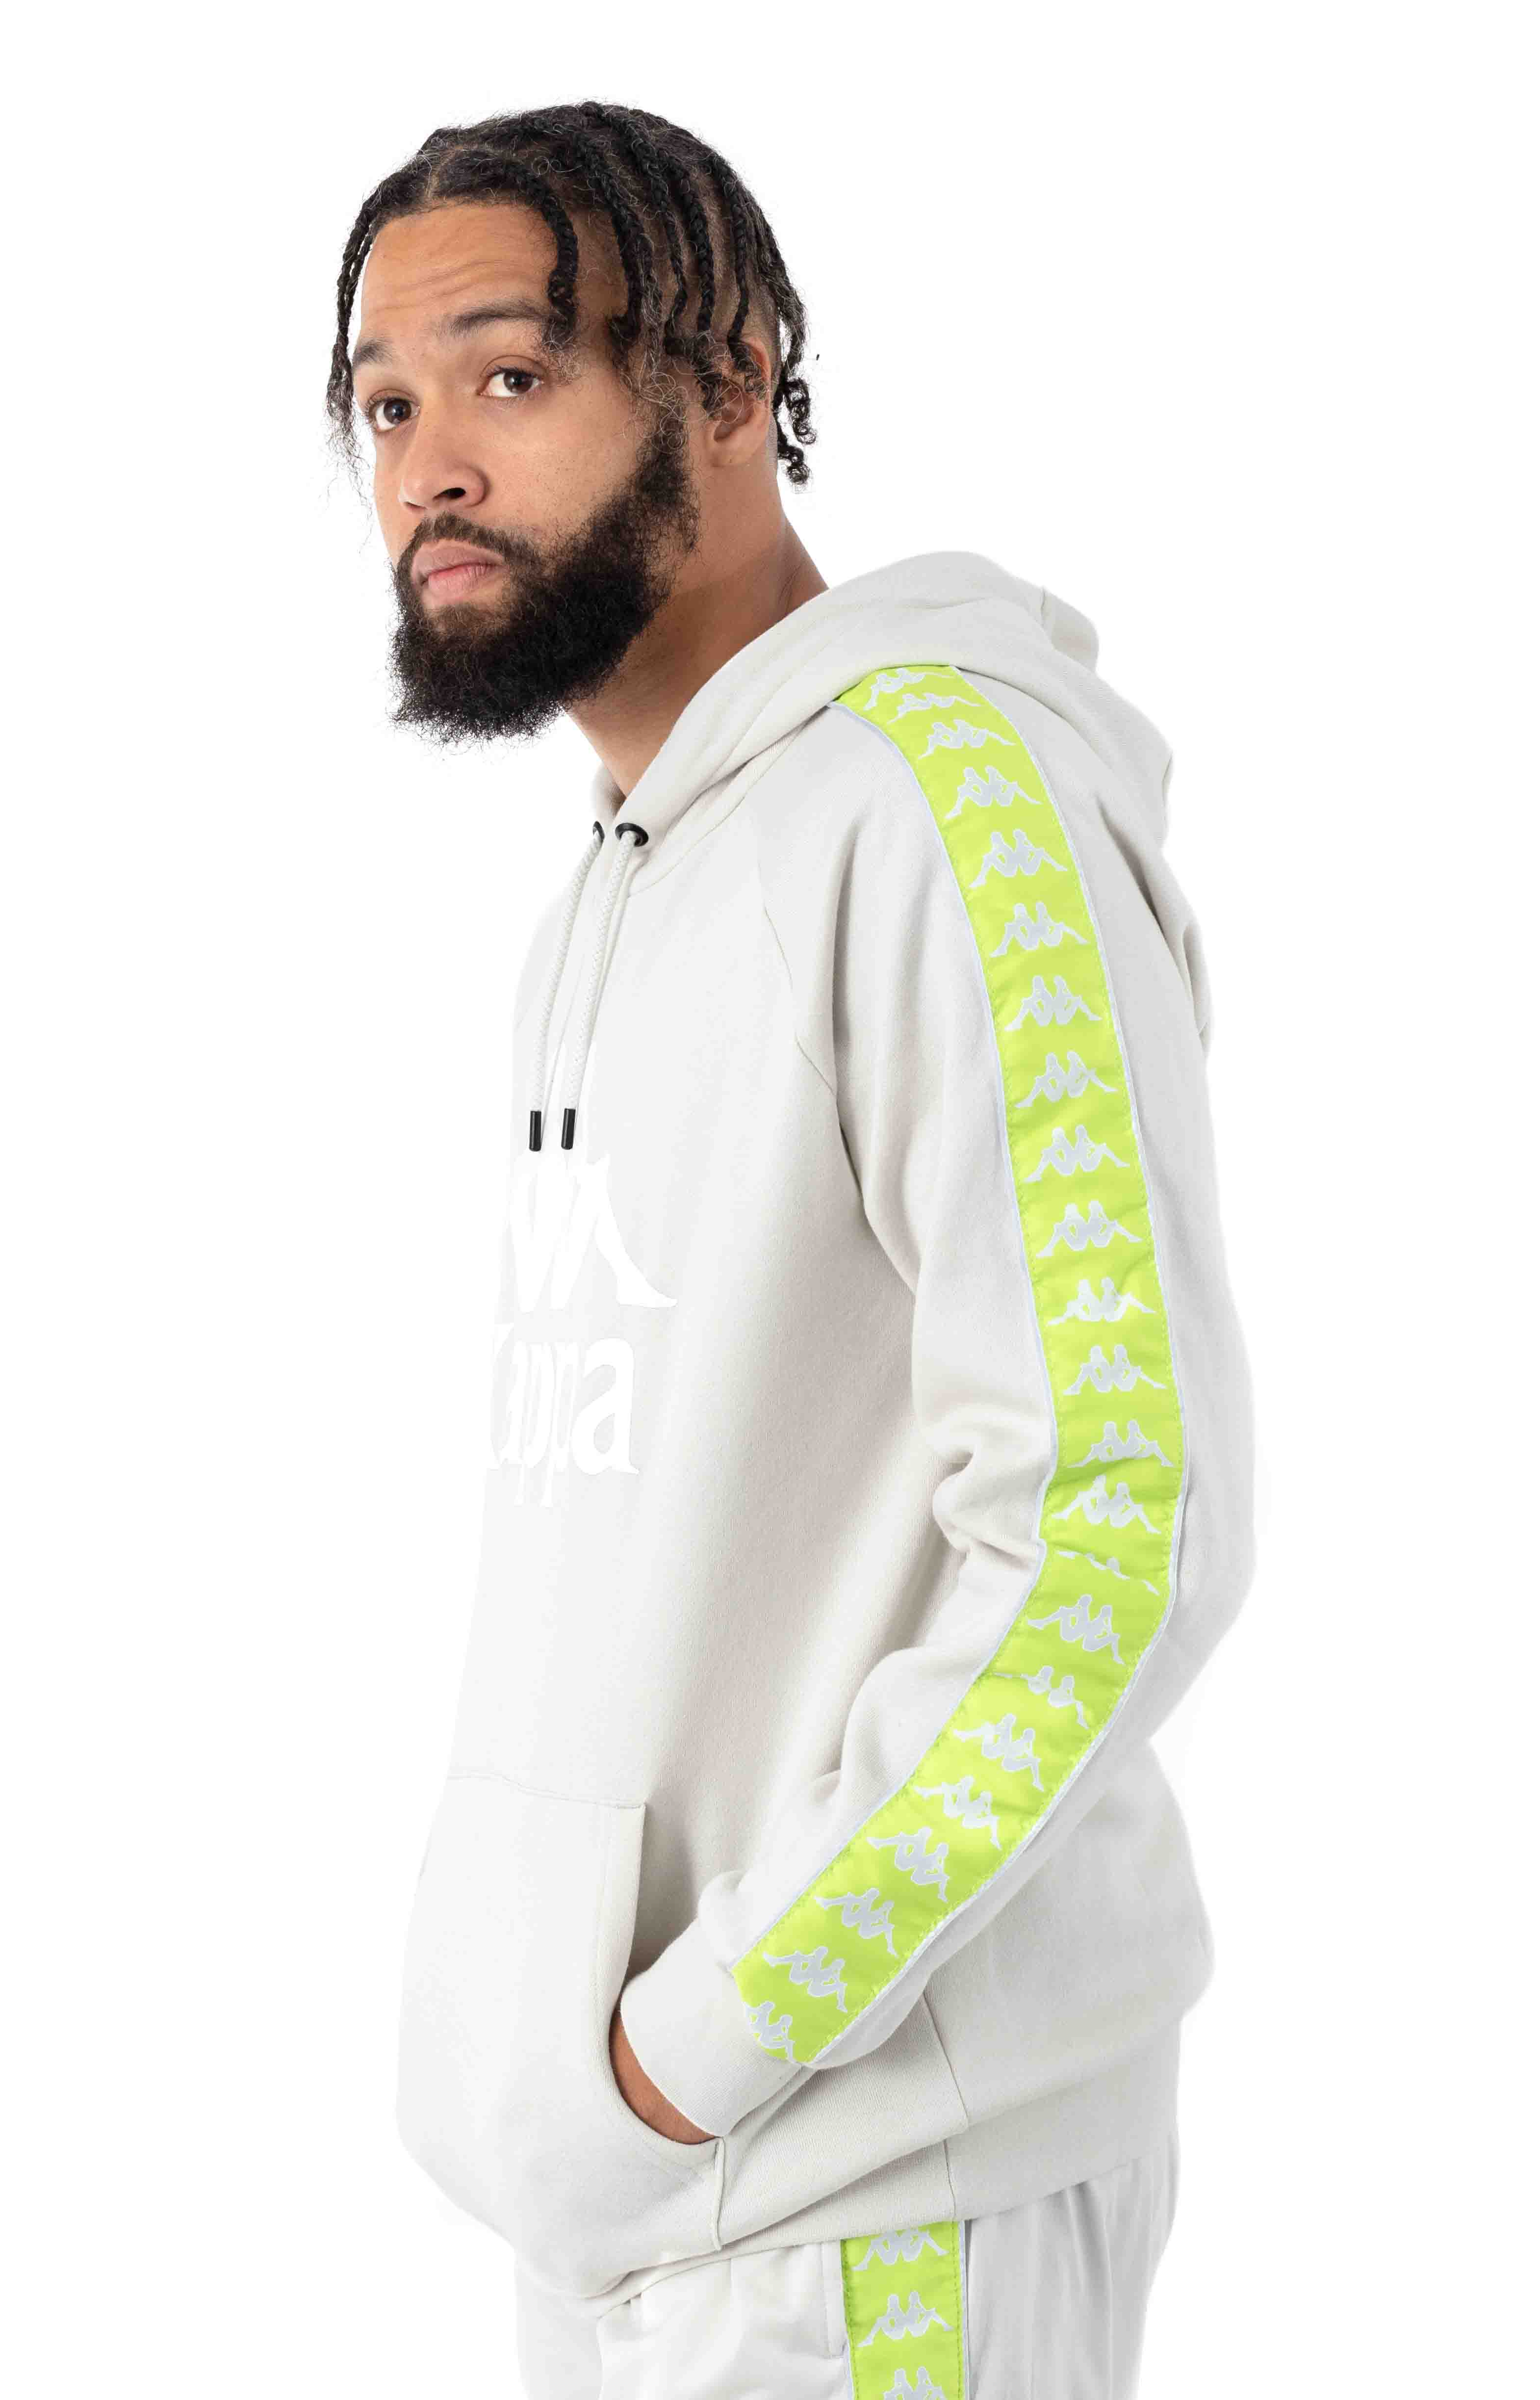 222 Banda Authentic Hurtado 2 Pullover Hoodie - Grey Vapor/Green Lime 2